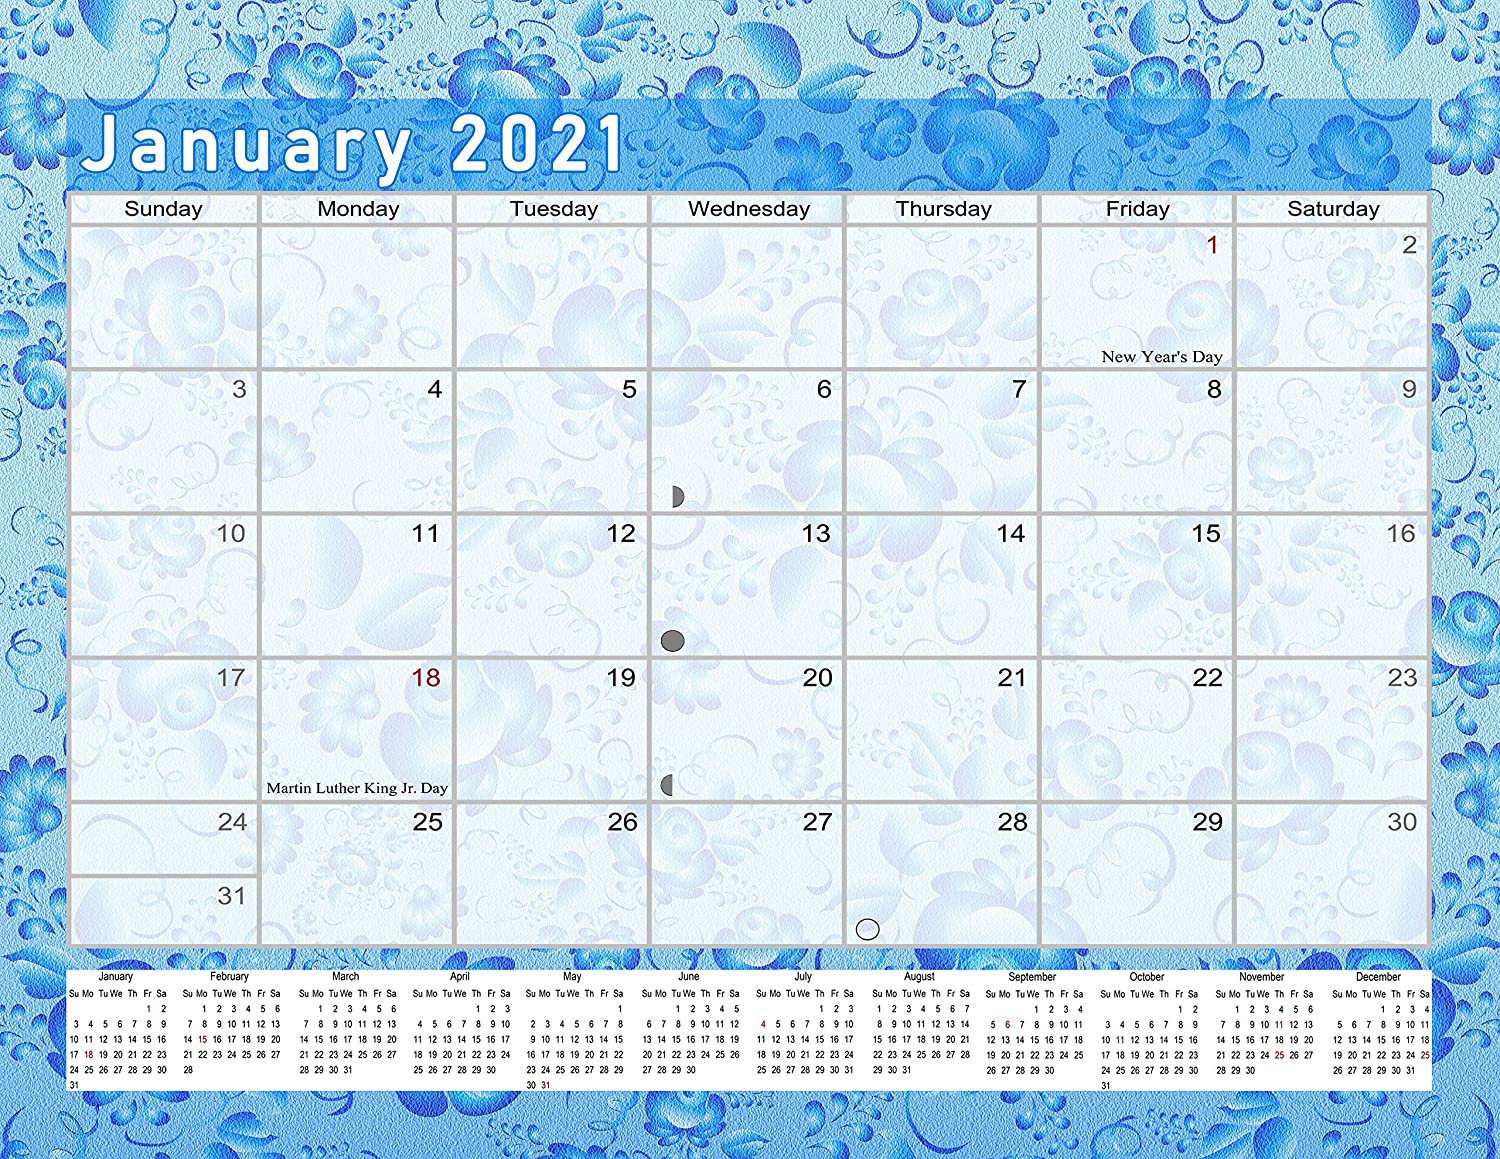 2021 Monthly Magnetic/Desk Calendar - 12 Months Desktop/Wall Calendar/Planner - (Edition #19)